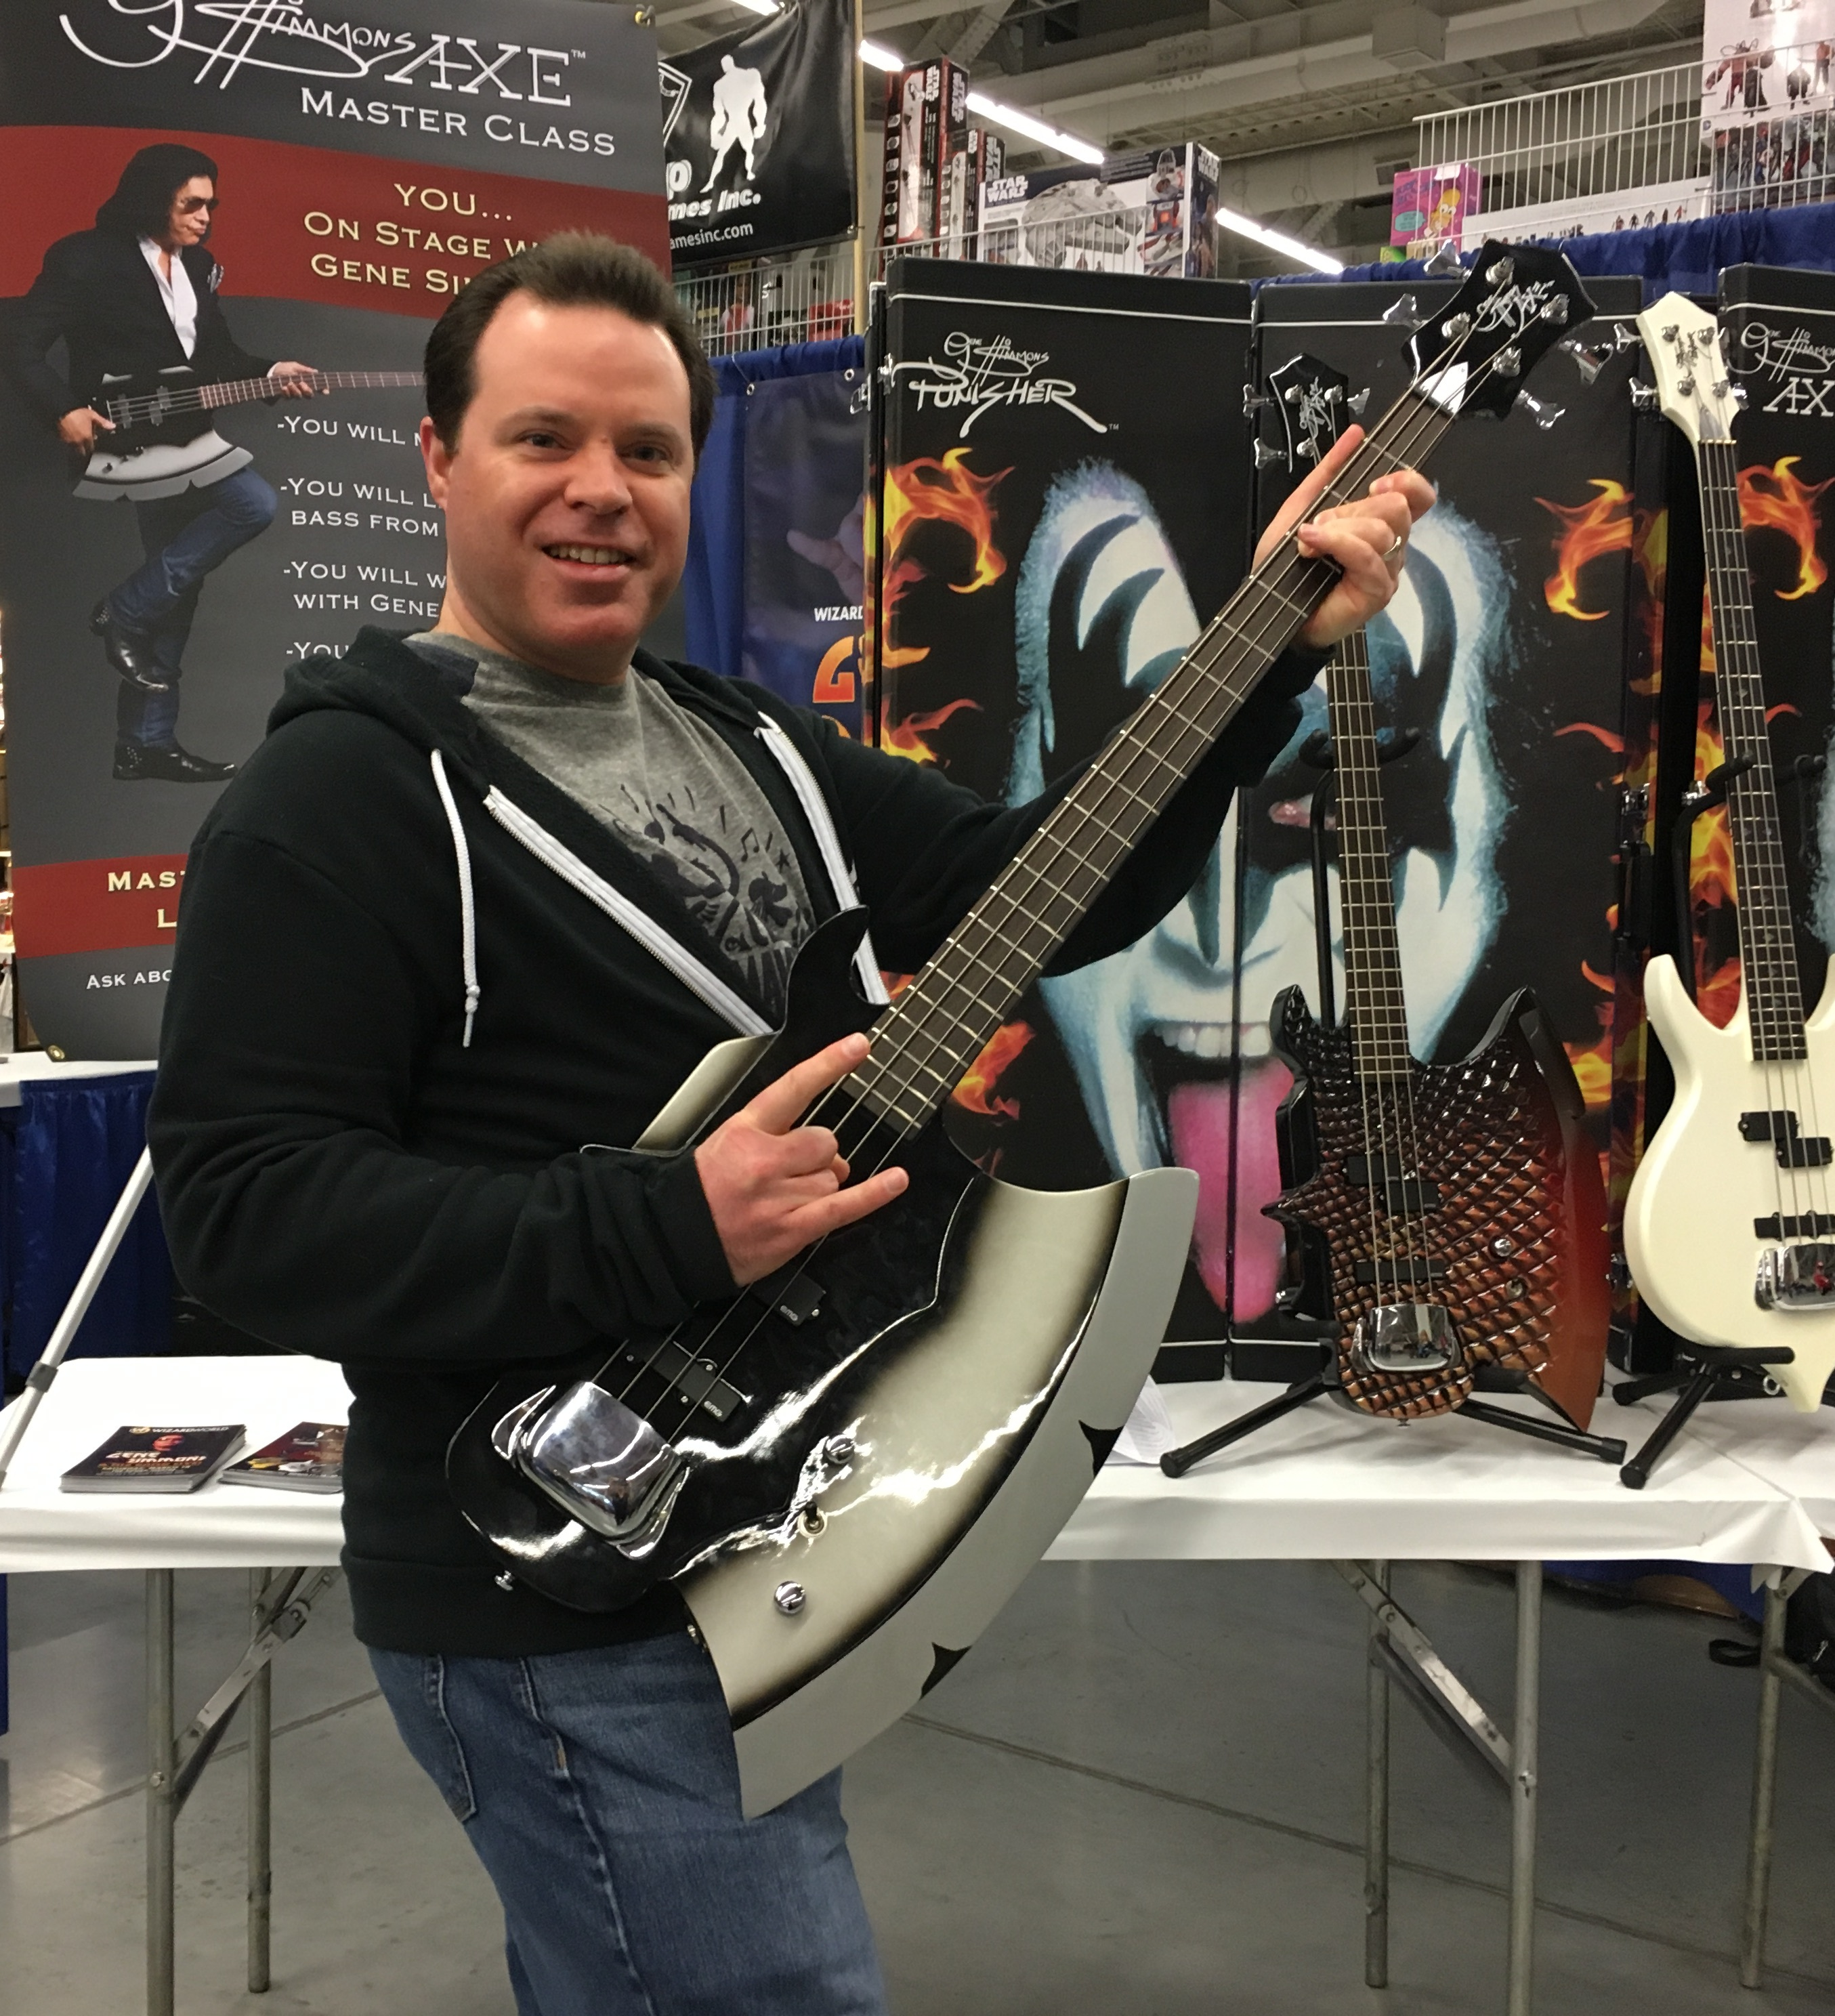 Jeremy Bednarski with Gene Simmons Axe Bass